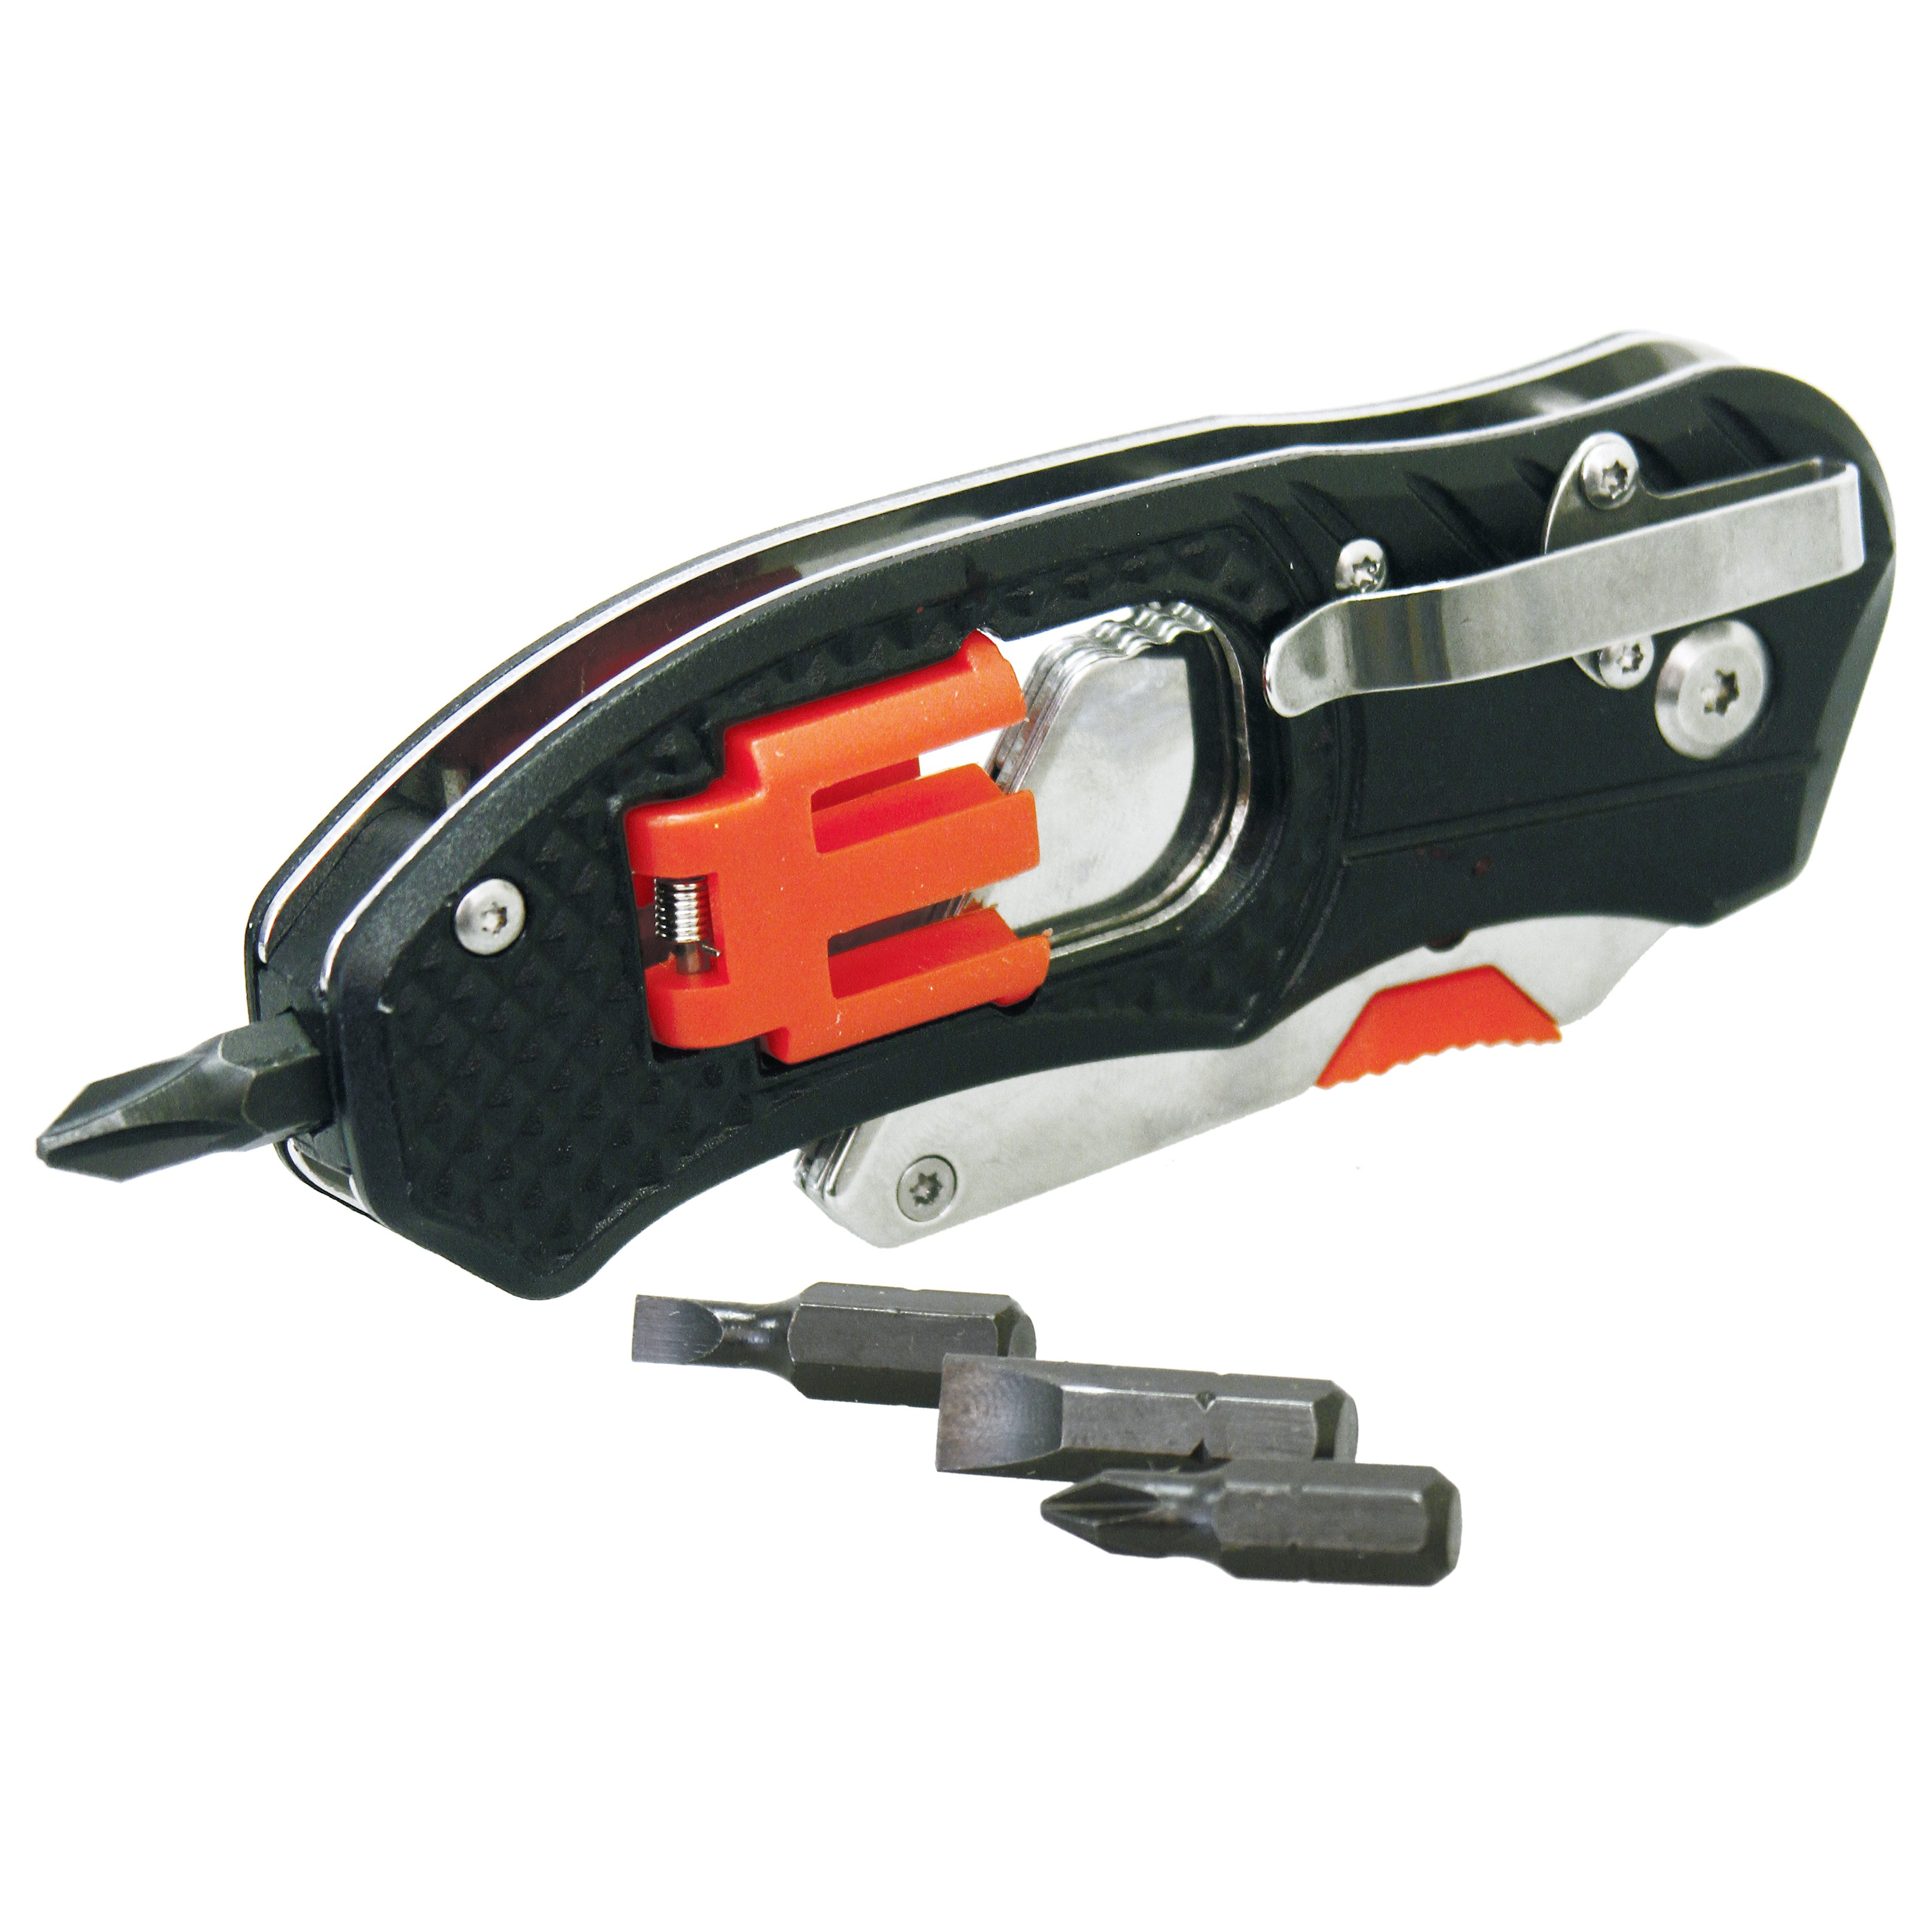 Rolson 36004 Folding Utility Knife With Screwdriver And Bits